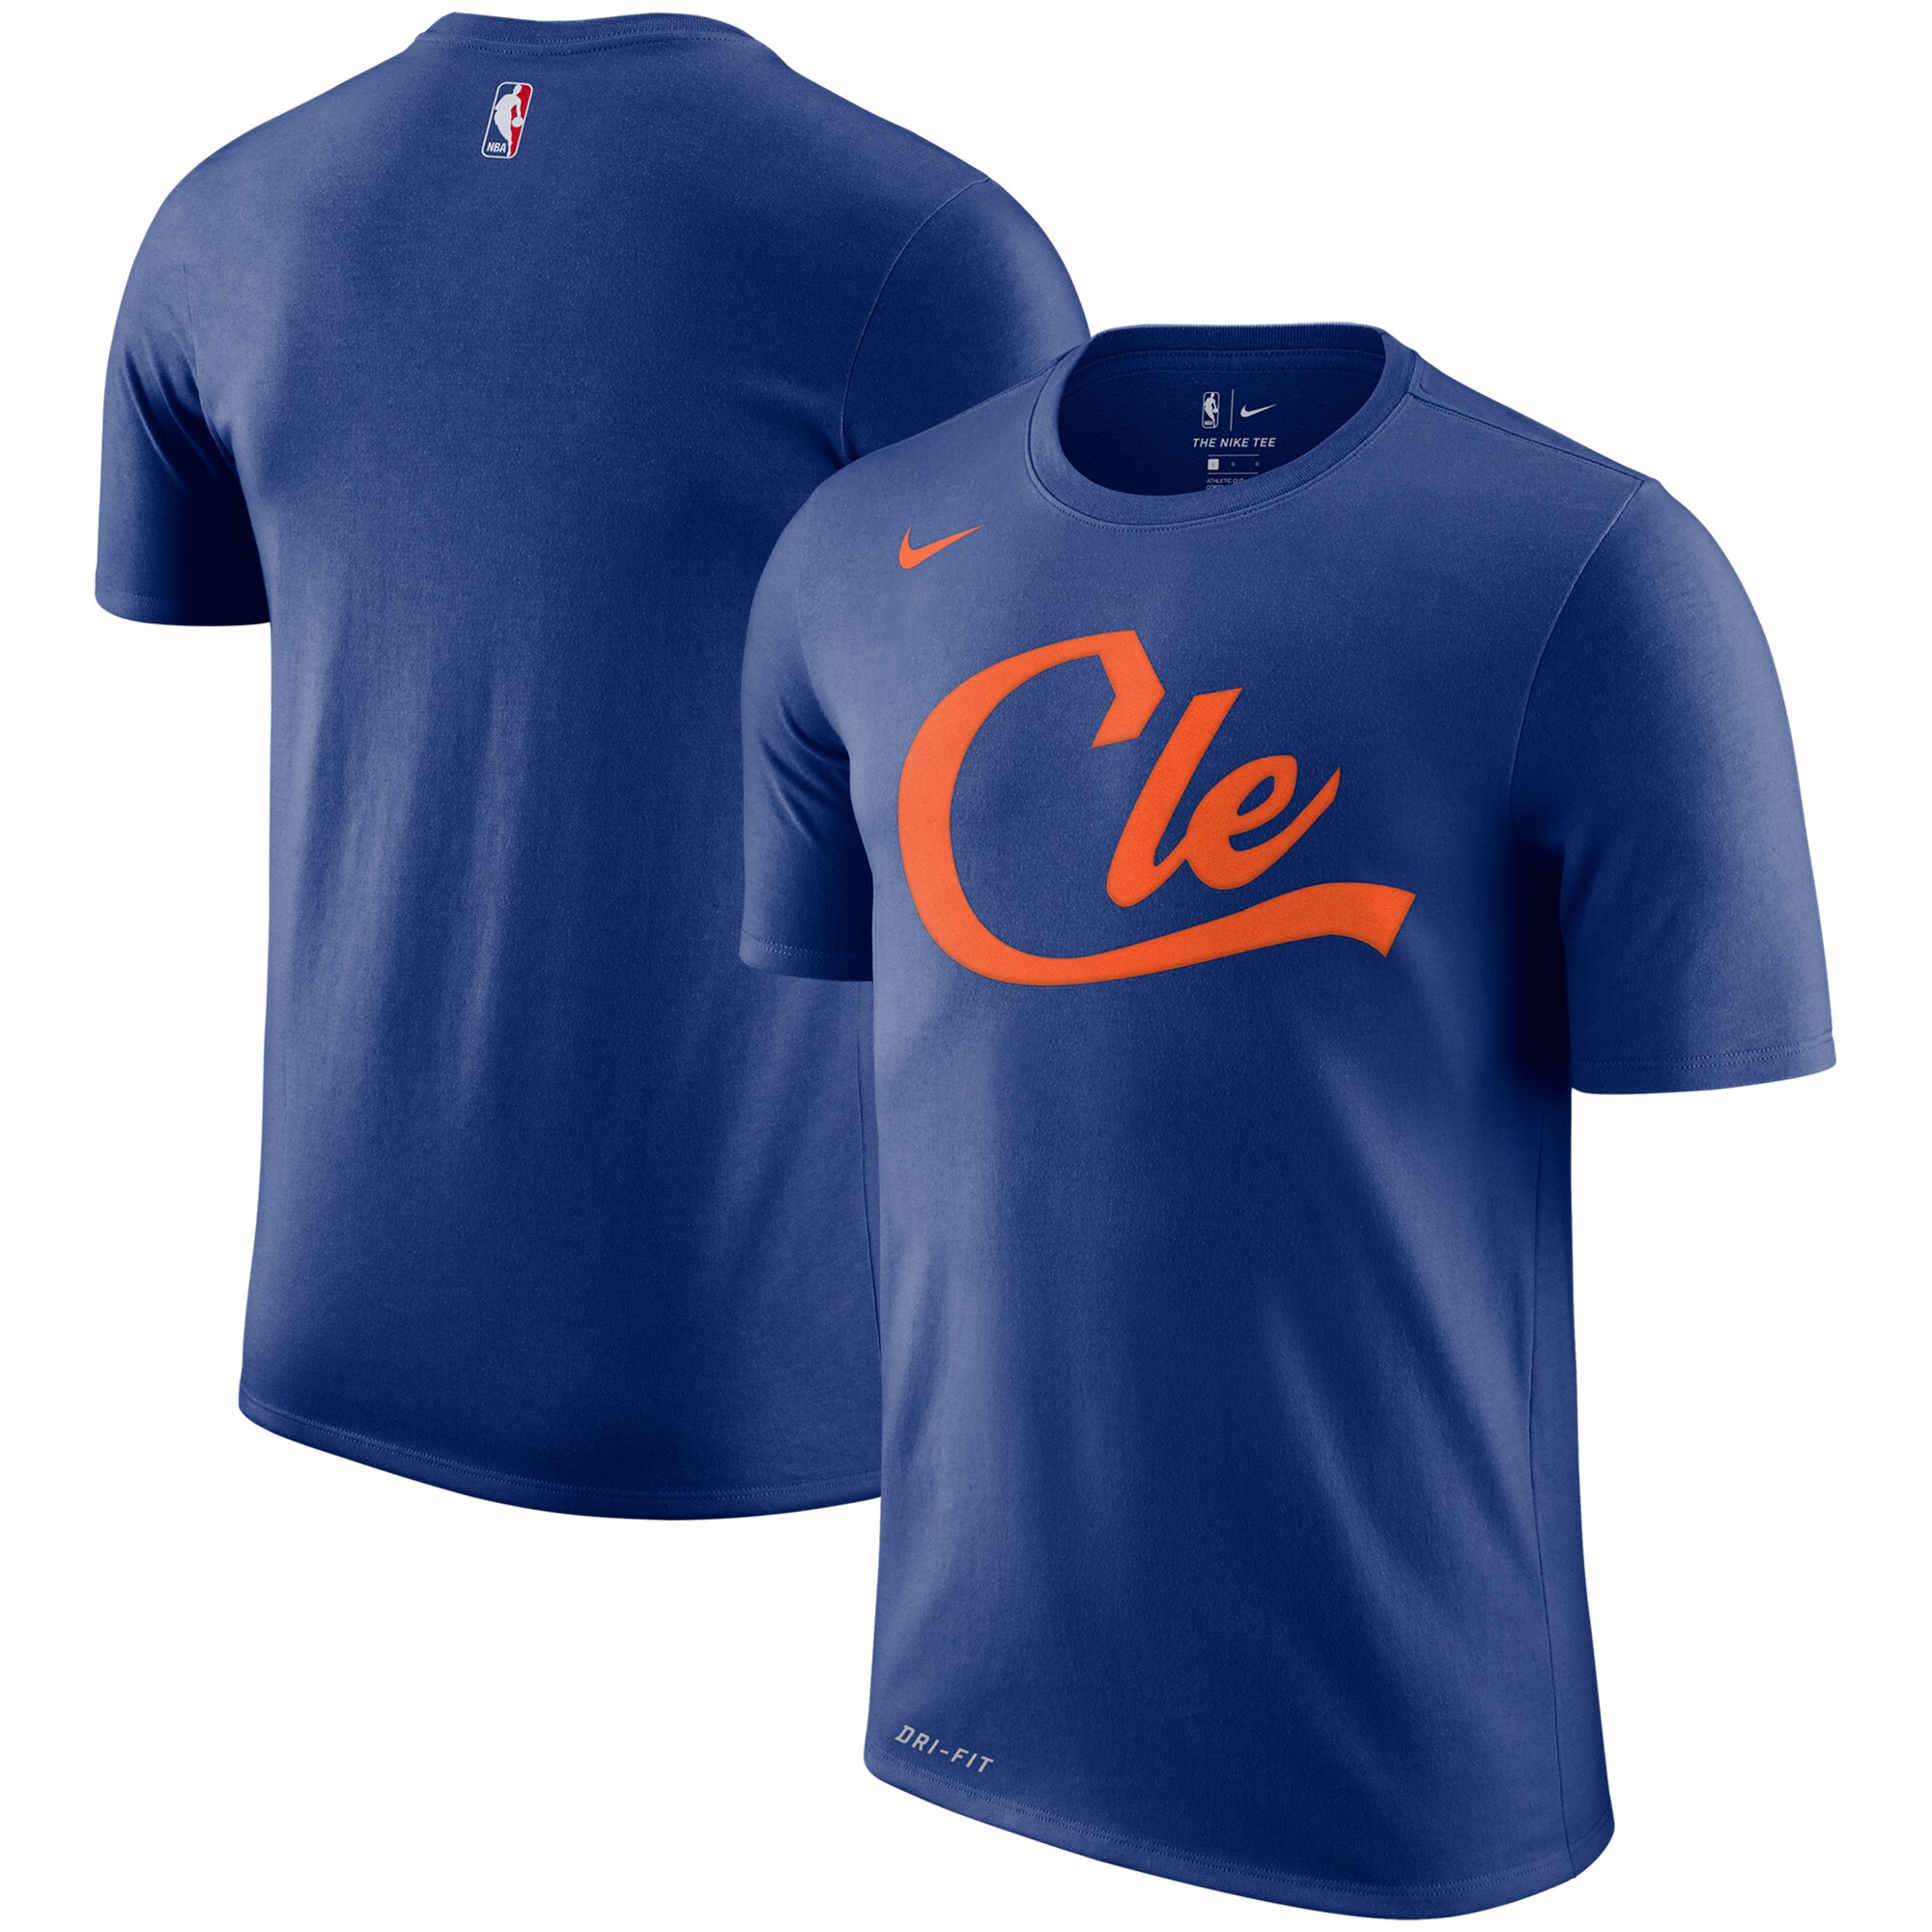 Cleveland Cavaliers Nike City Edition Performance Cotton Essential T-Shirt - Blue